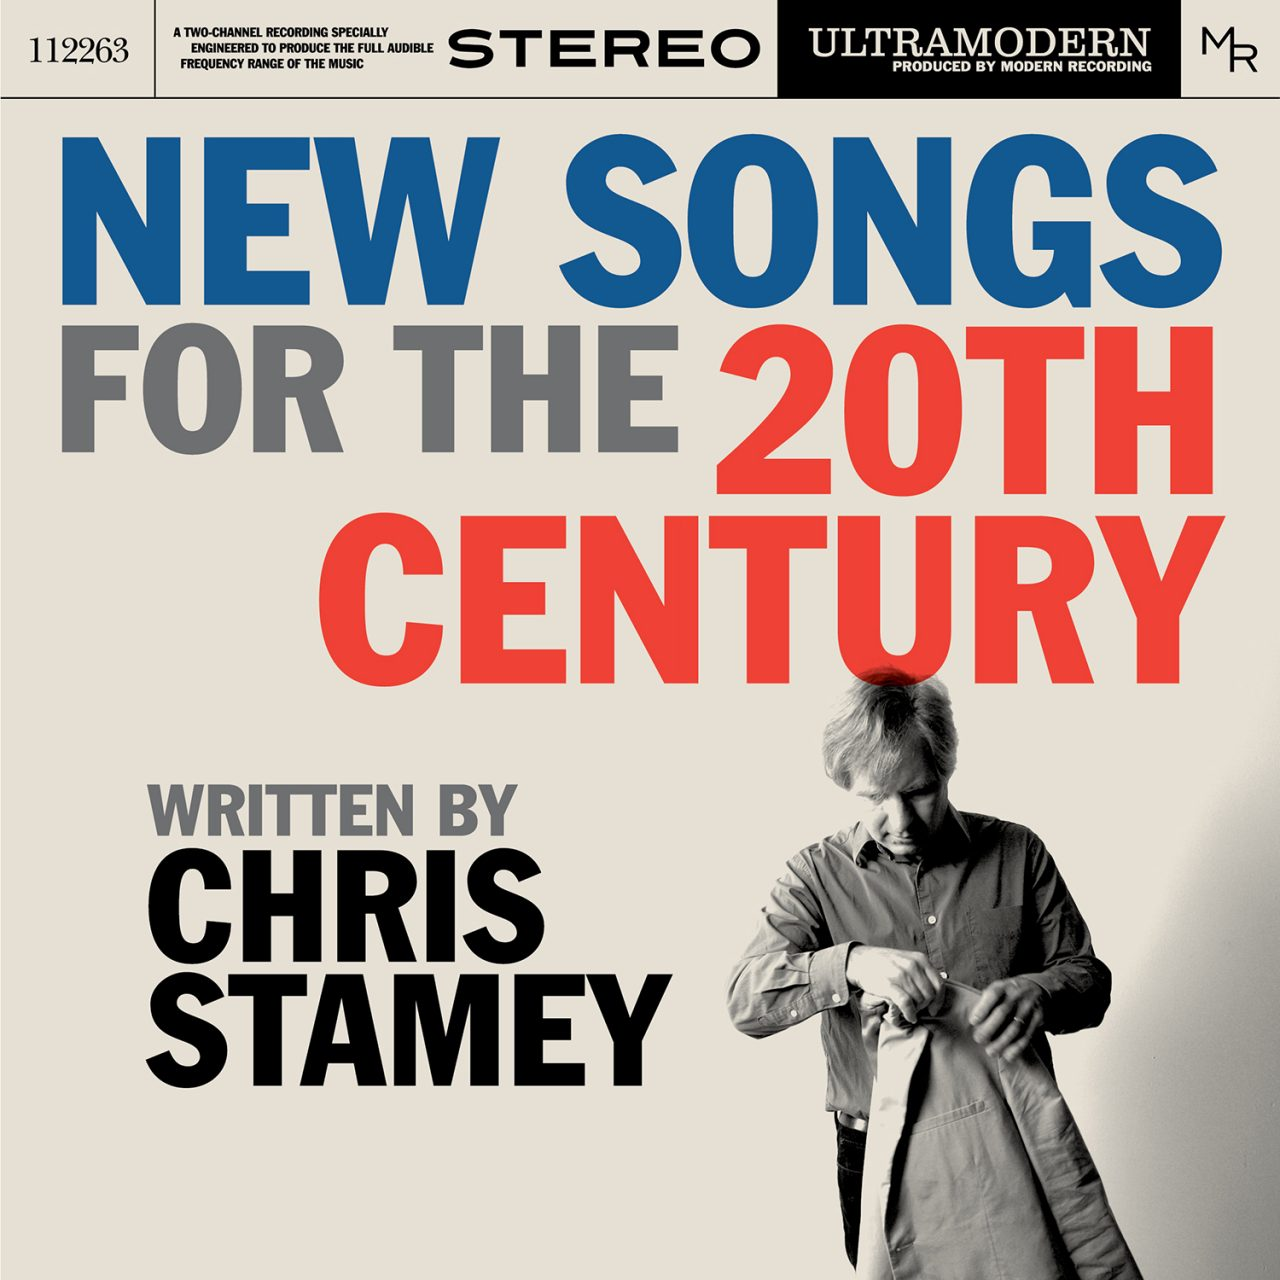 Stamey-New-Songs-For-20th-Century-OV-335-1280x1280